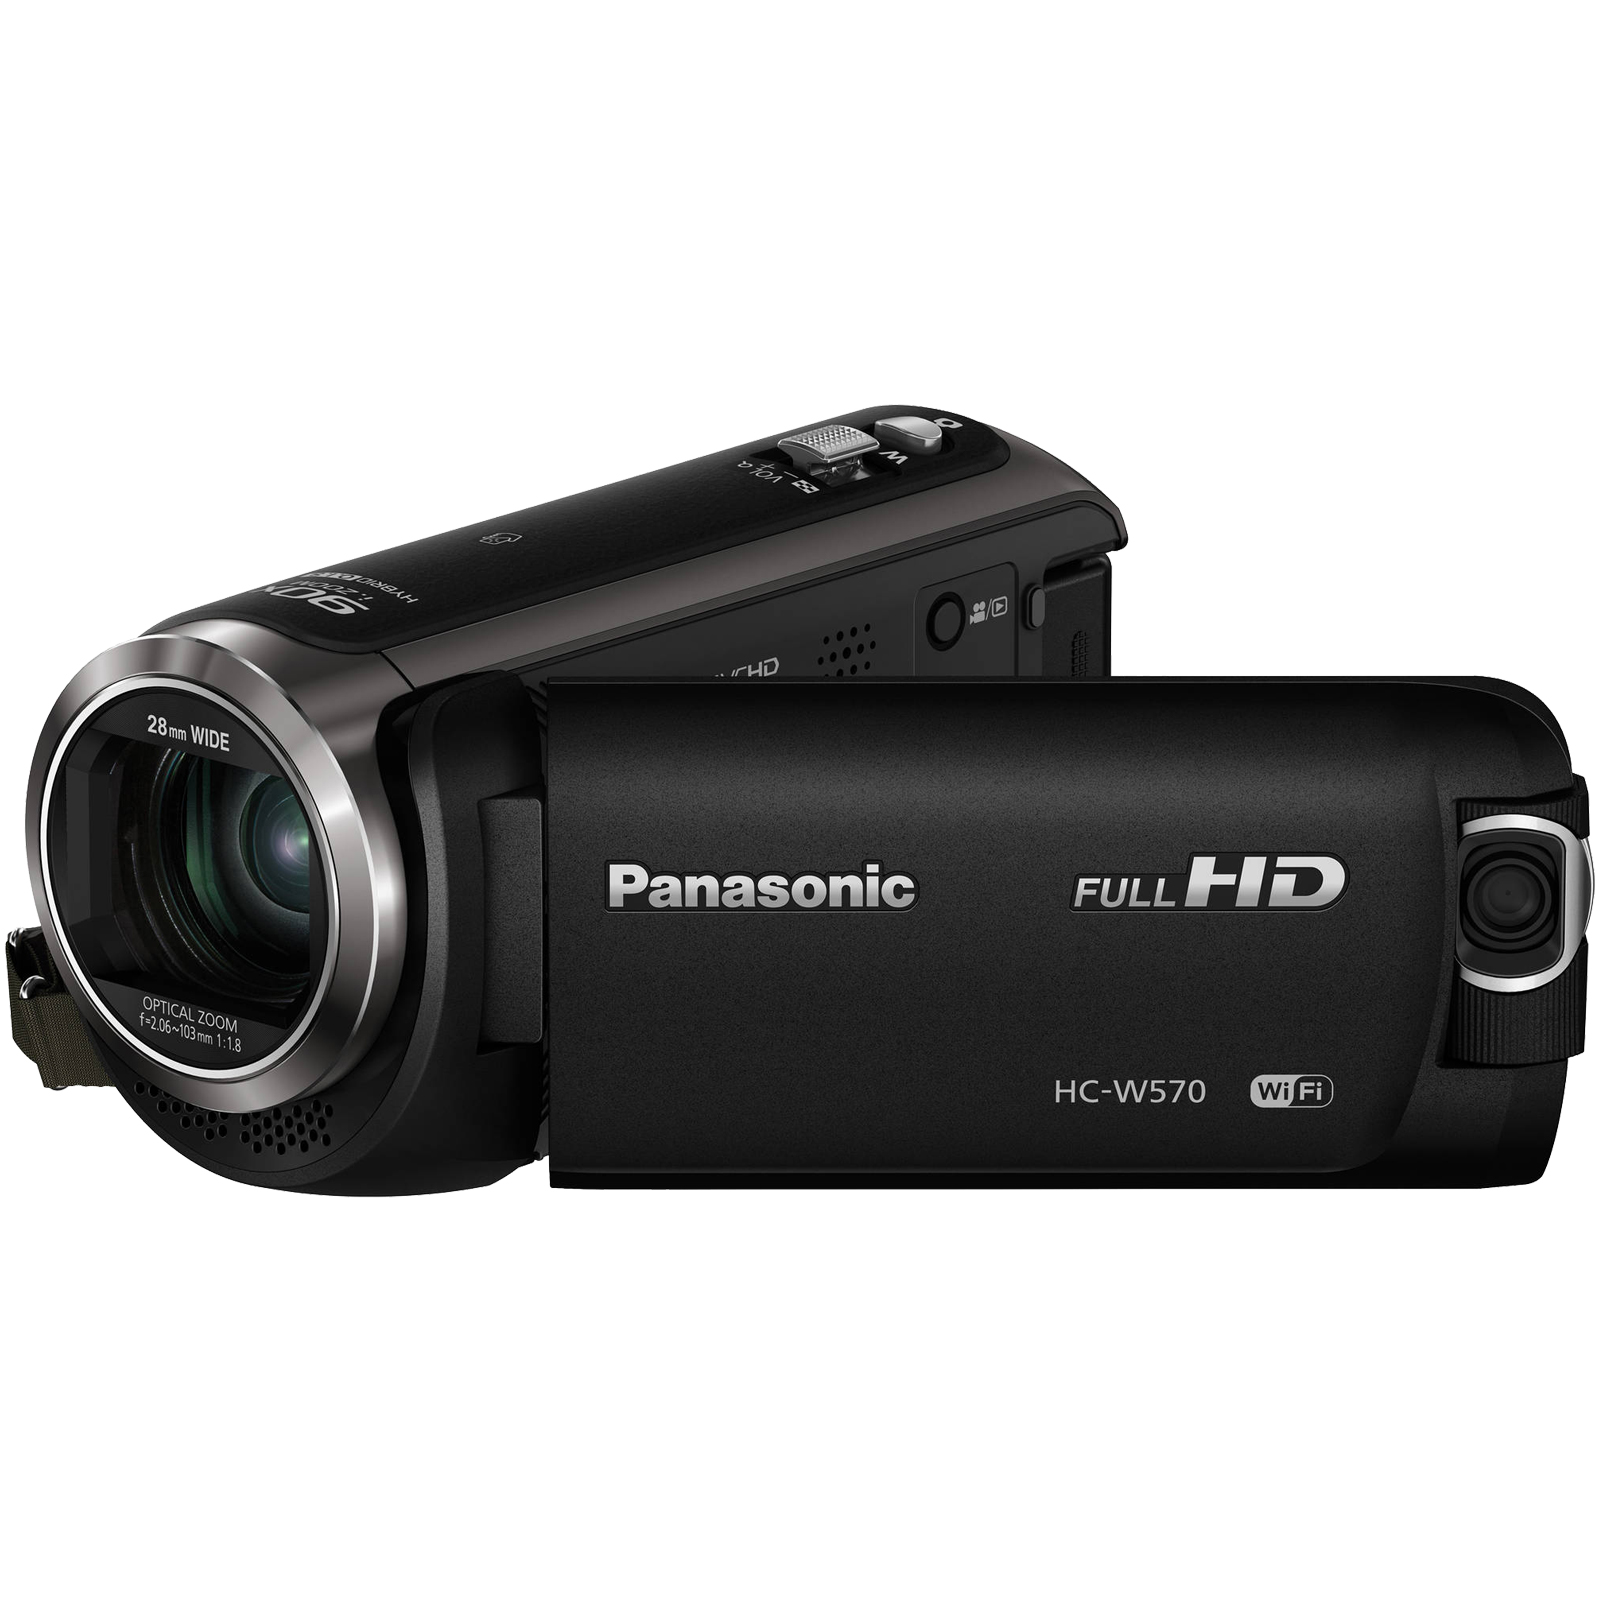 Panasonic HC-W570 Twin Recording HD Wi-Fi Video Camera Camcorder Twin Features: Picture-in Picture Full-motion Recording